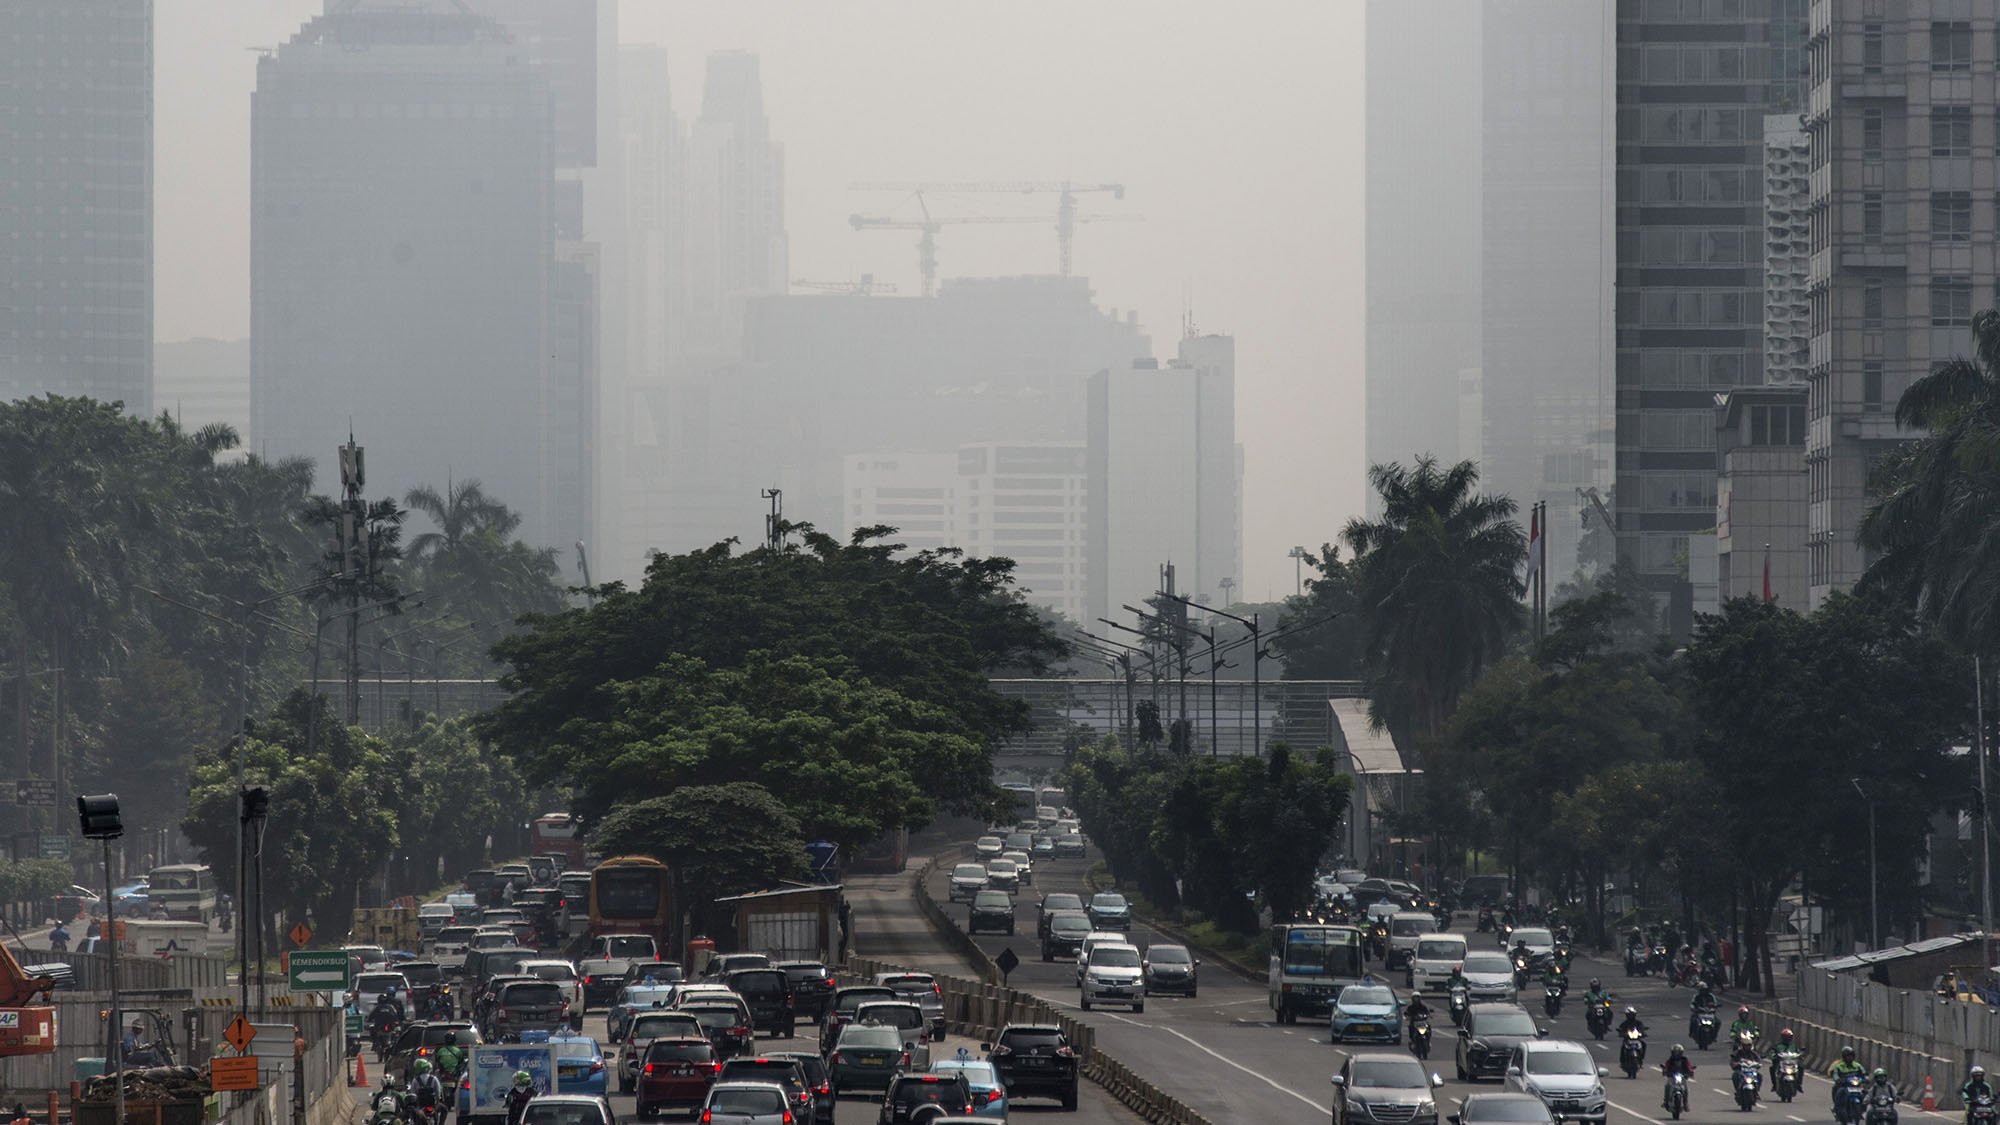 Buildings in downtown Jakarta are shrouded in a thick haze made worse by fires burning in rural provinces around the region.